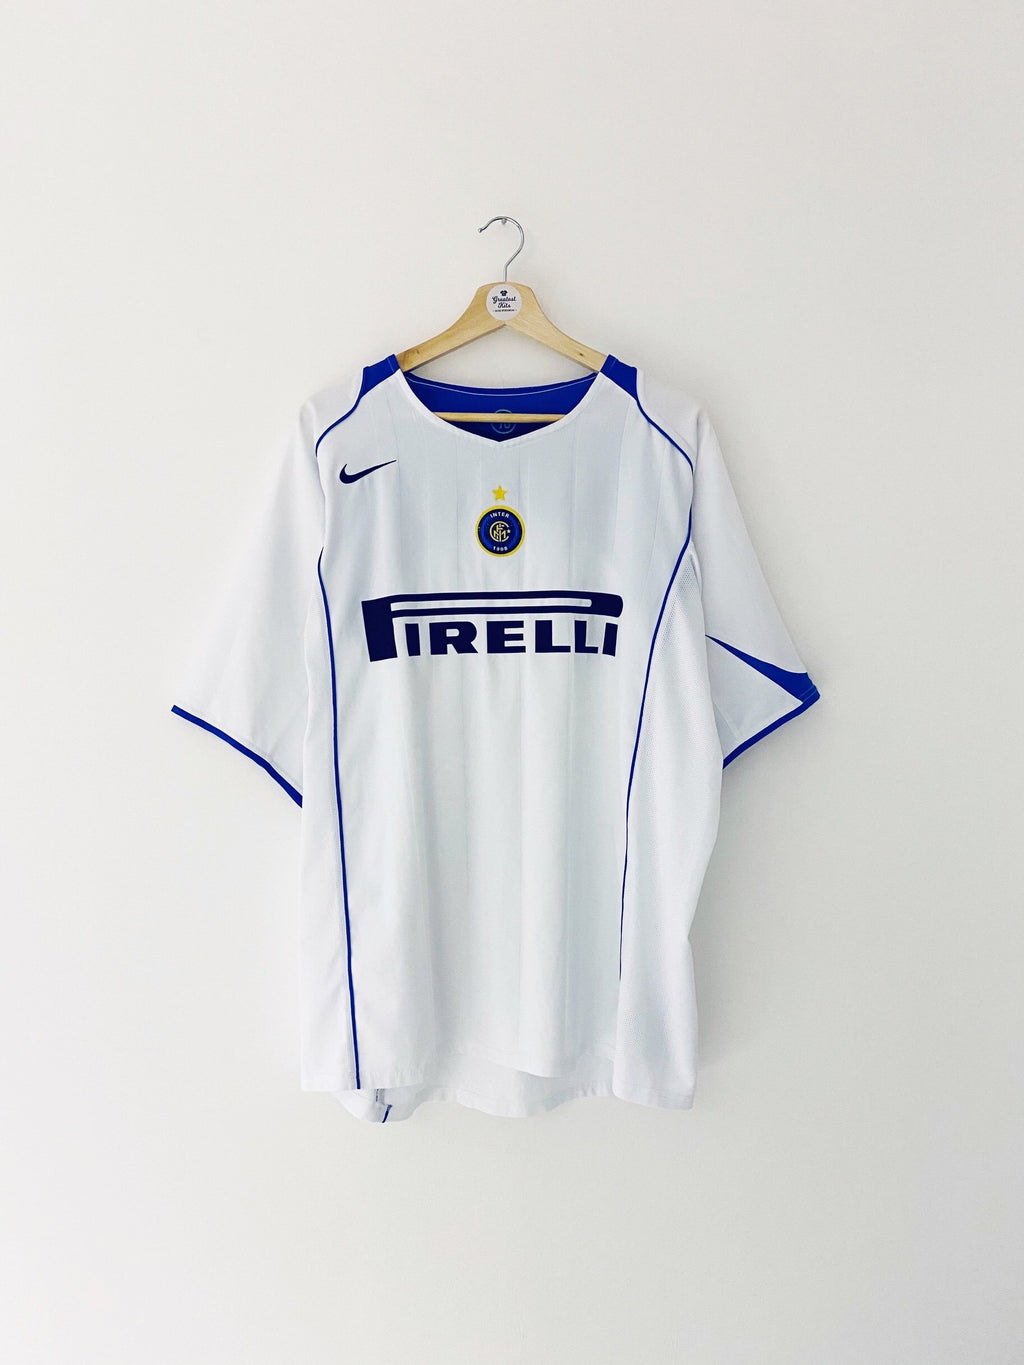 2004/05 Inter Milan Away Shirt (XL) 9/10